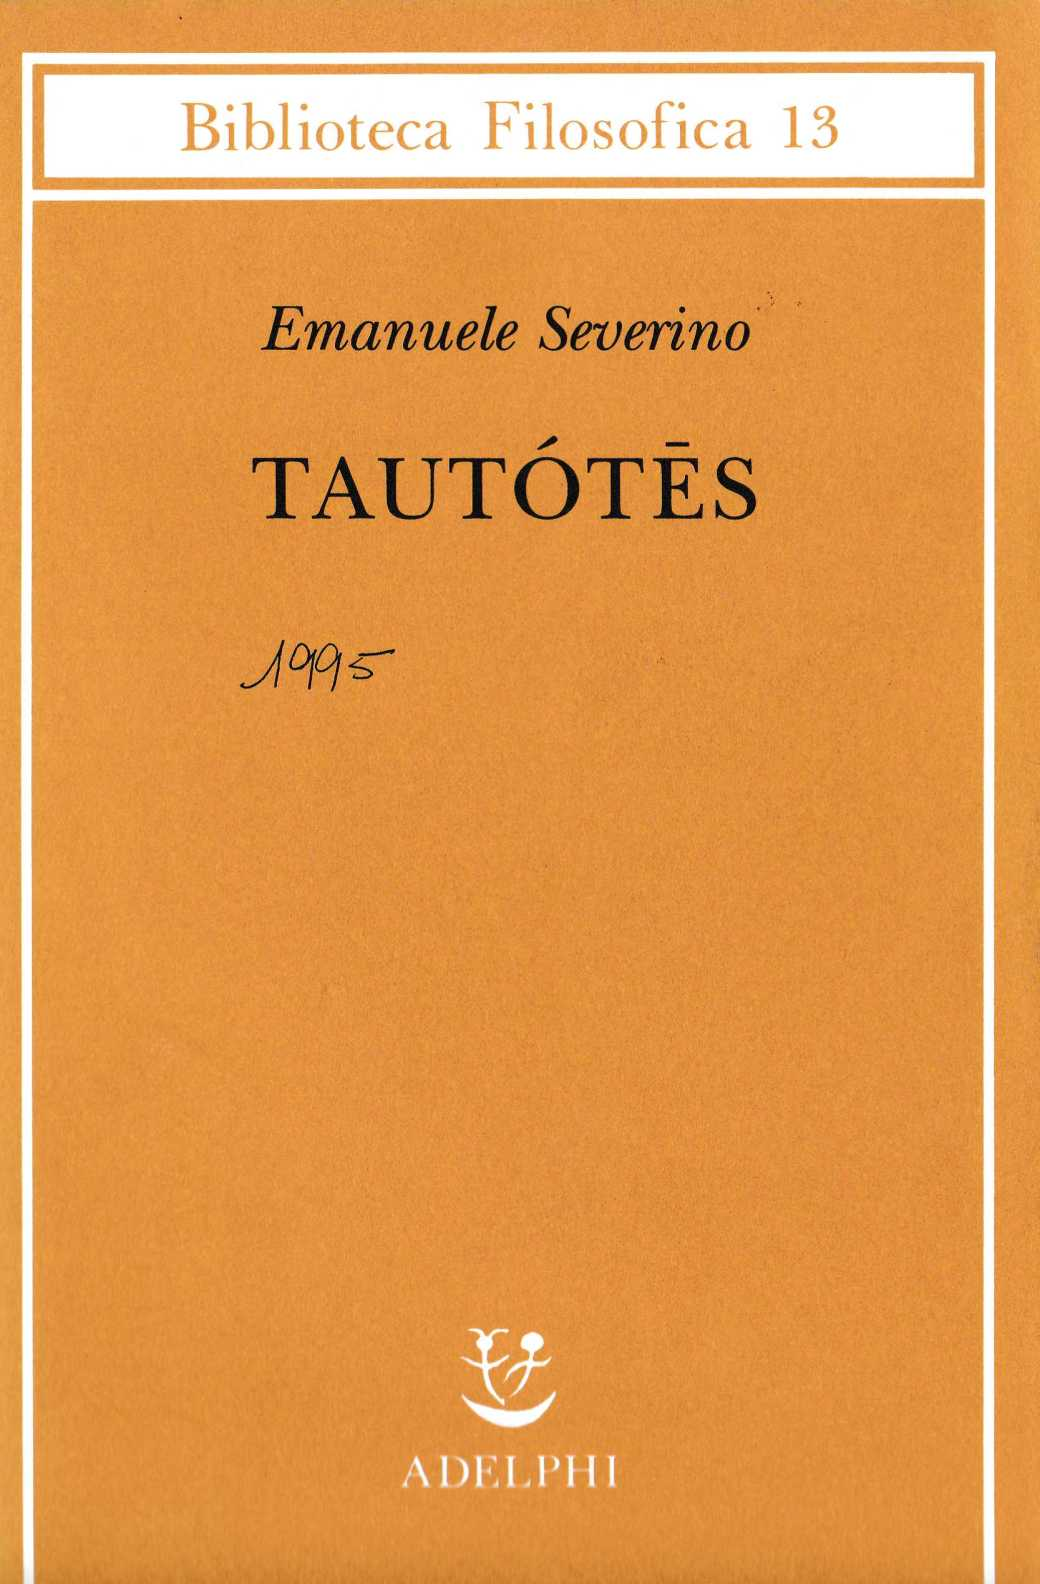 tautotes4303